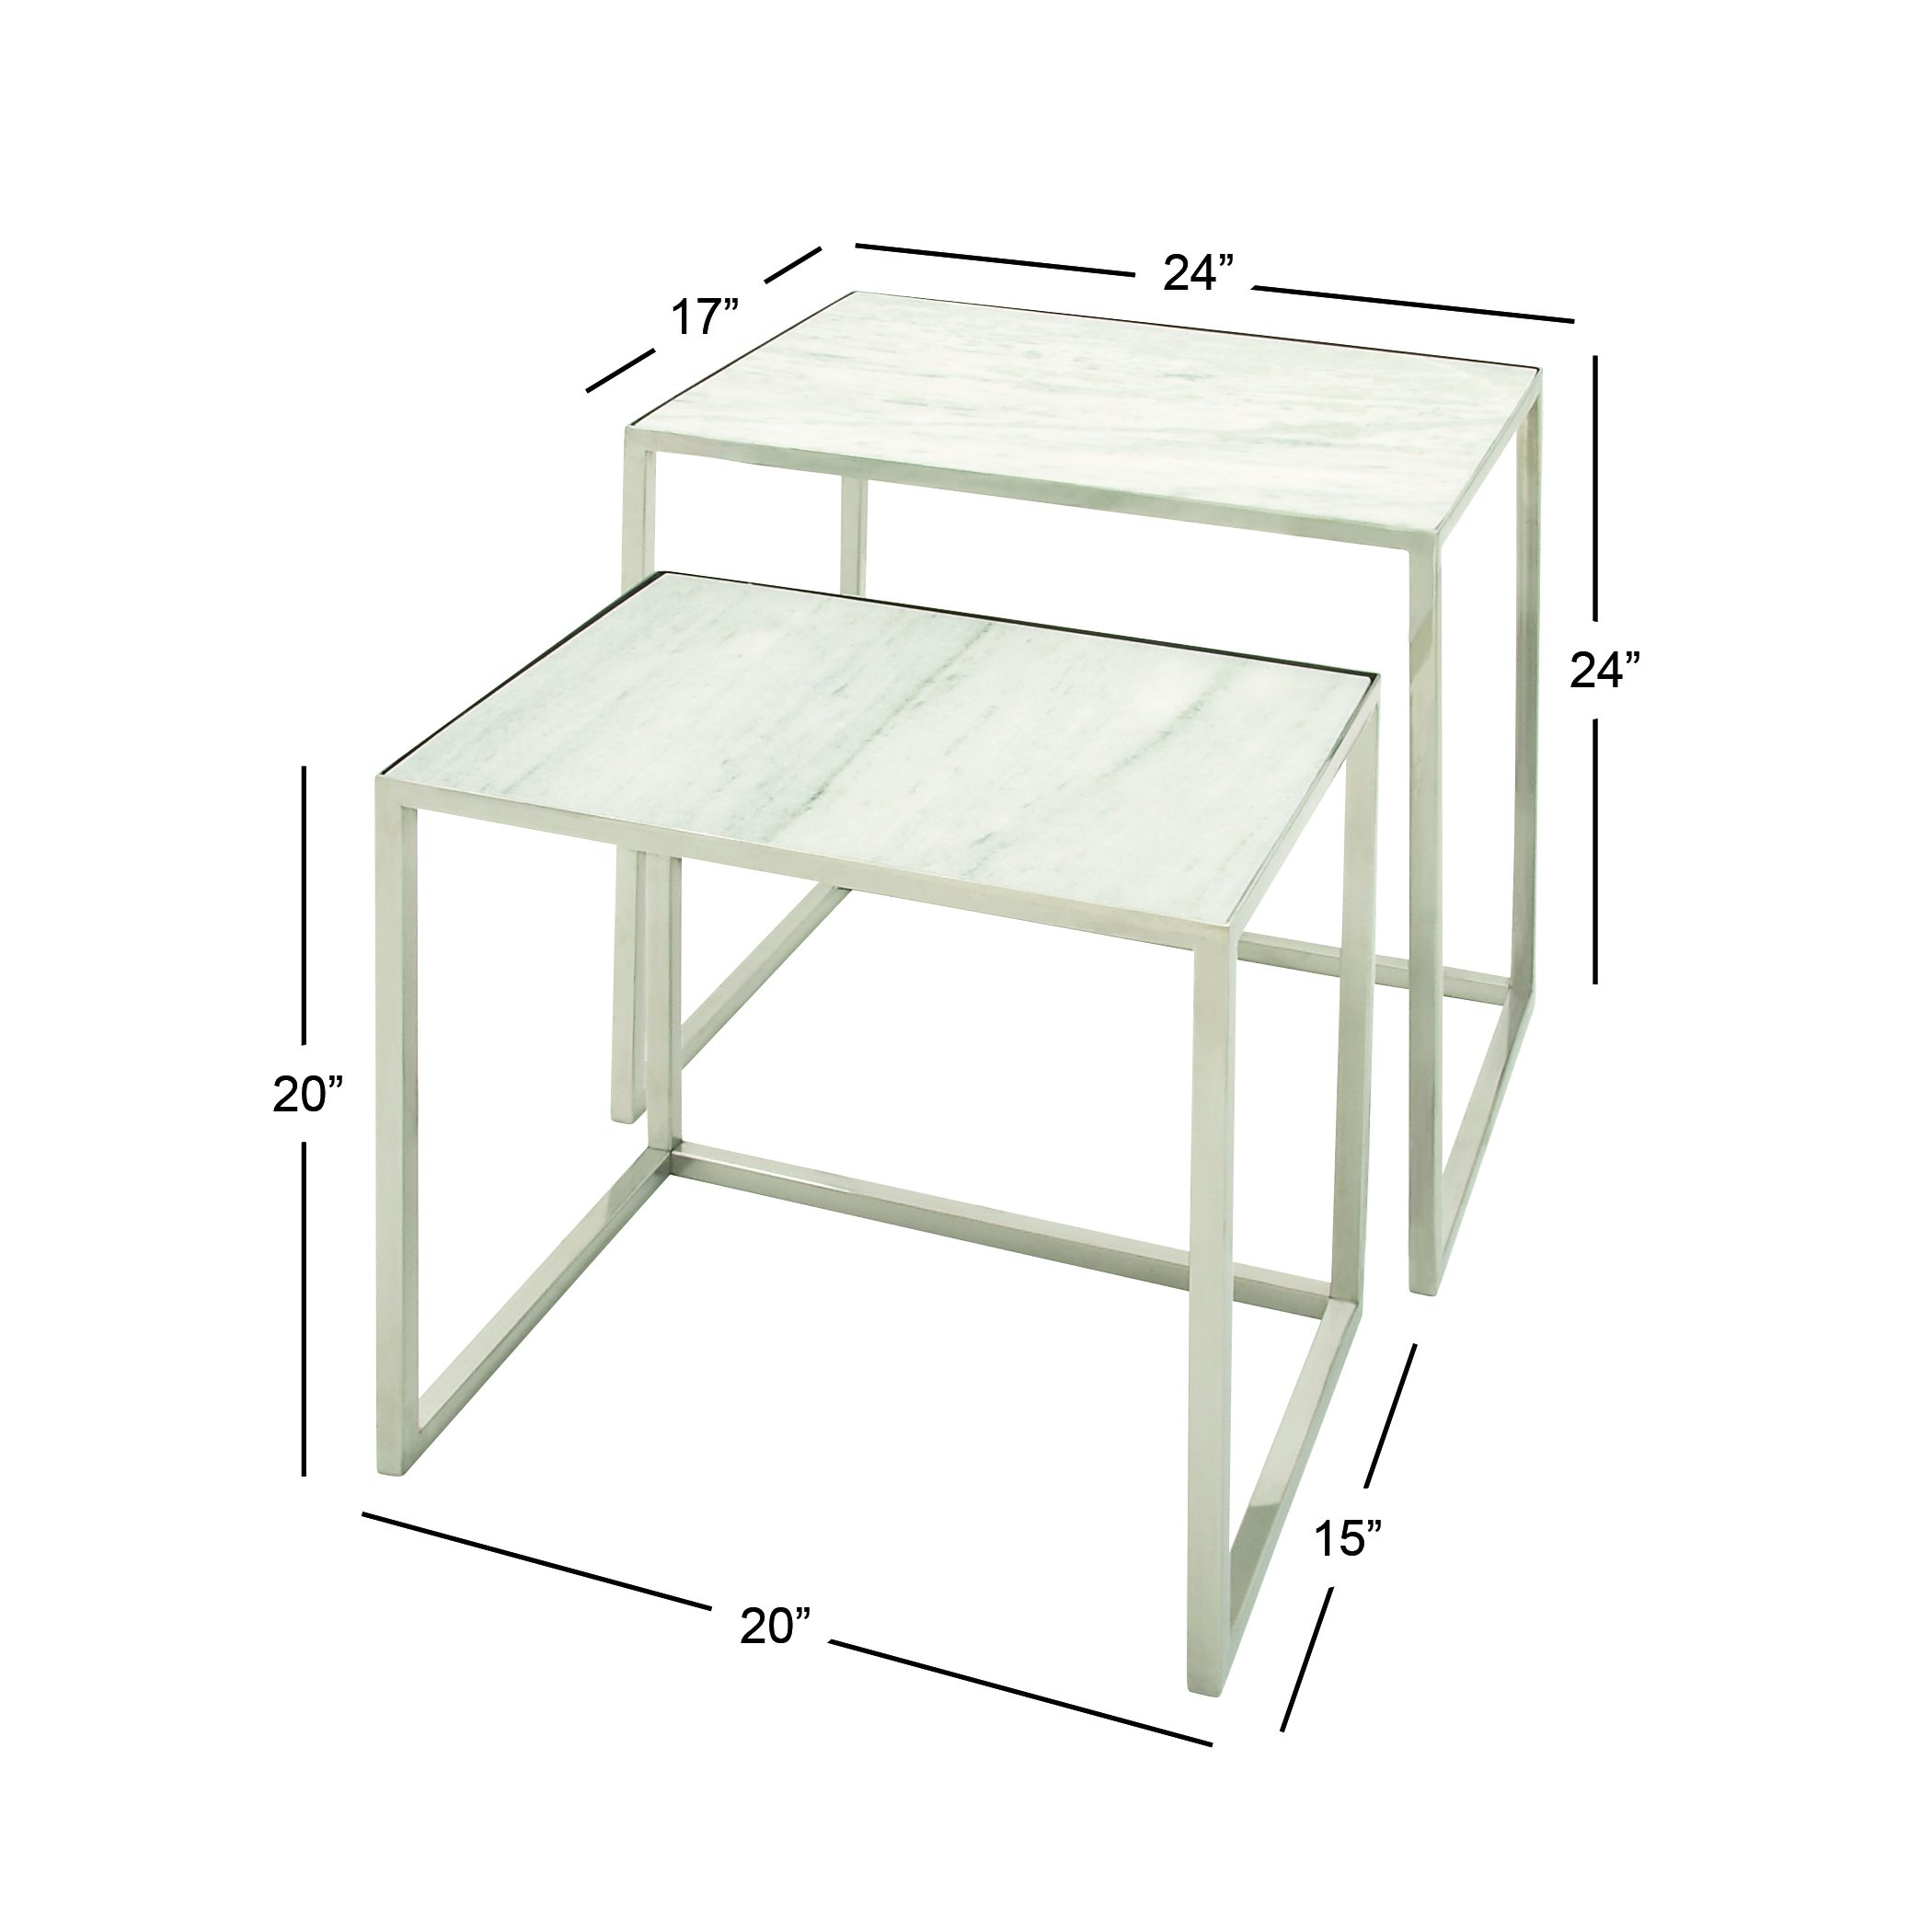 Deco 79 49605 Stainless Steel Marble Nesting Tables (Set of 2), 24''/20'' by Deco 79 (Image #2)